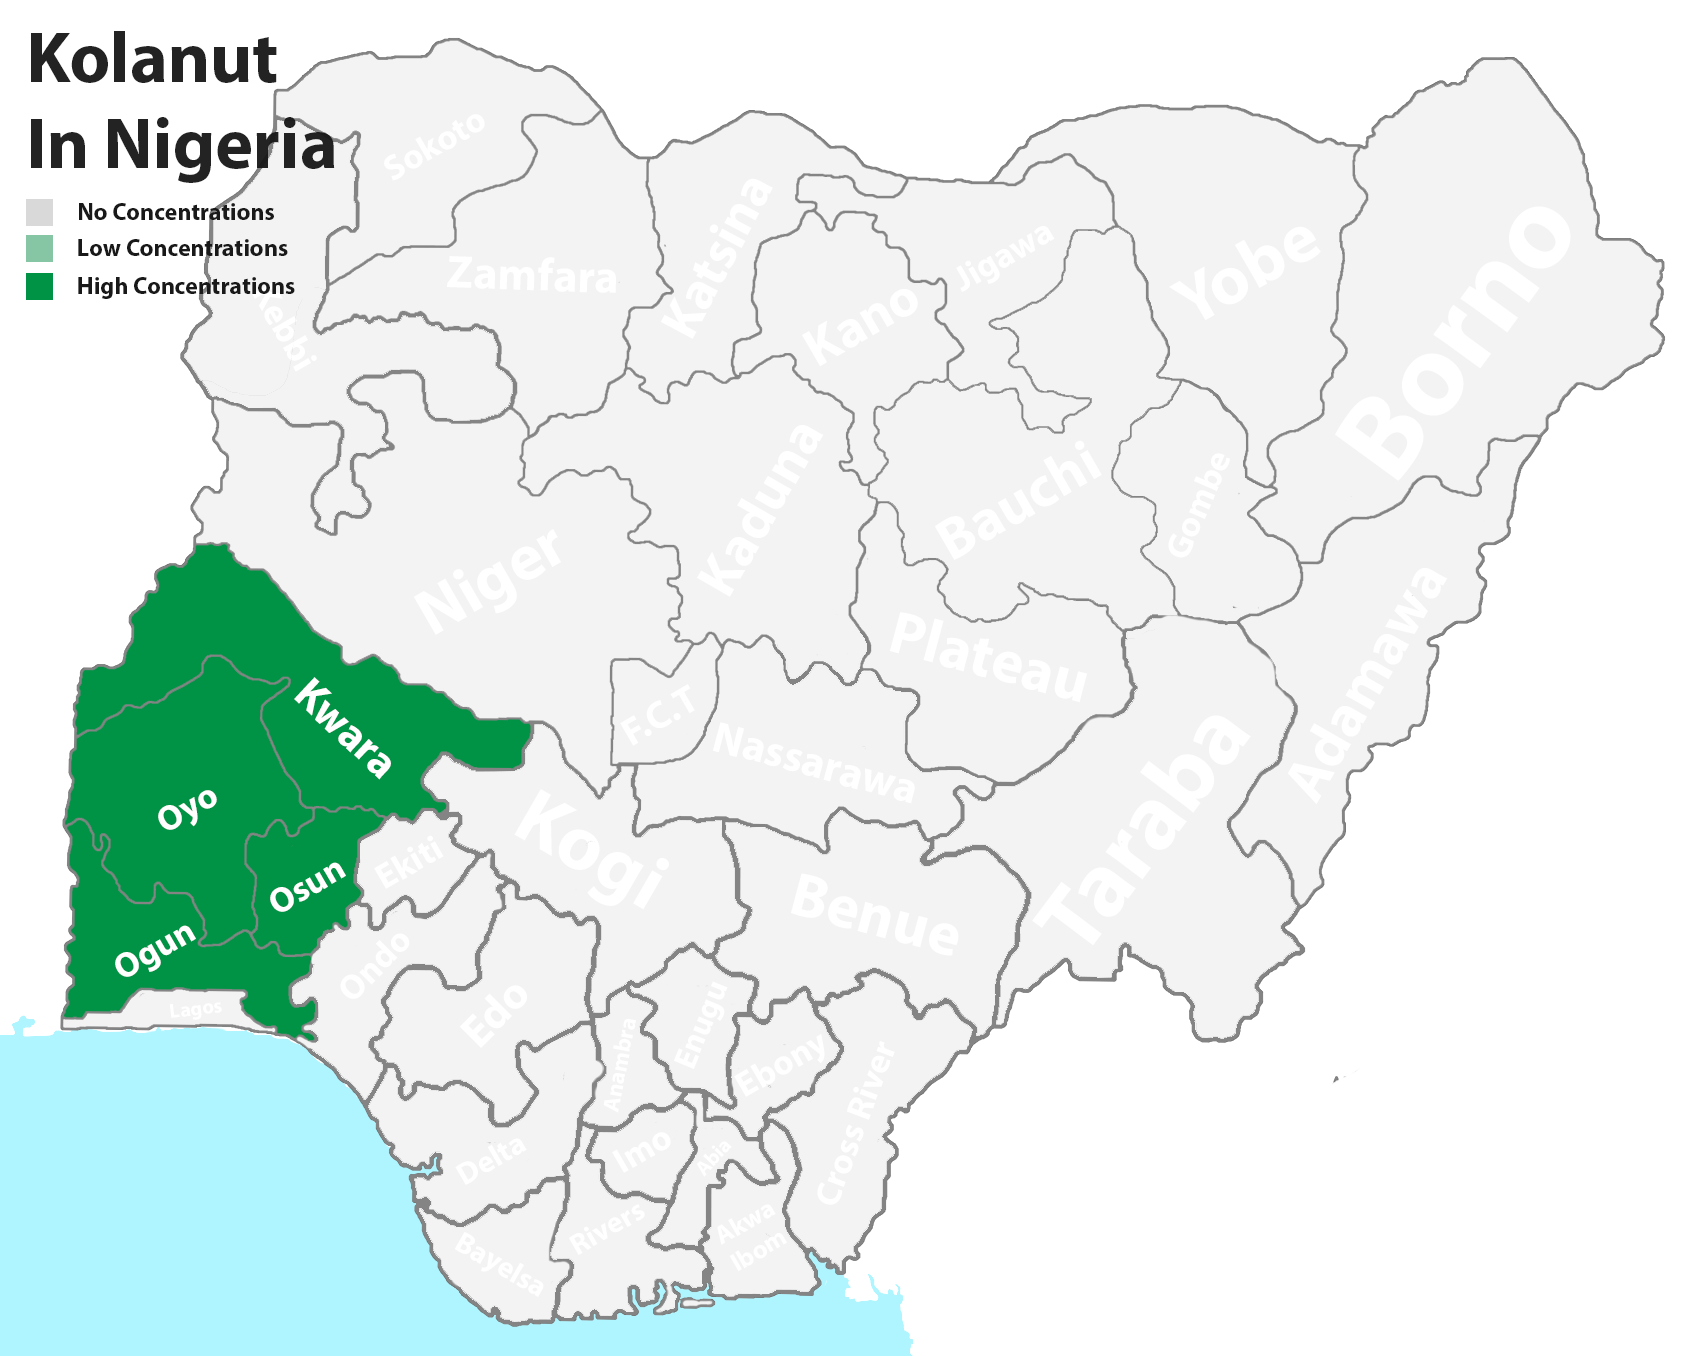 Kolanut producing states in Nigeria